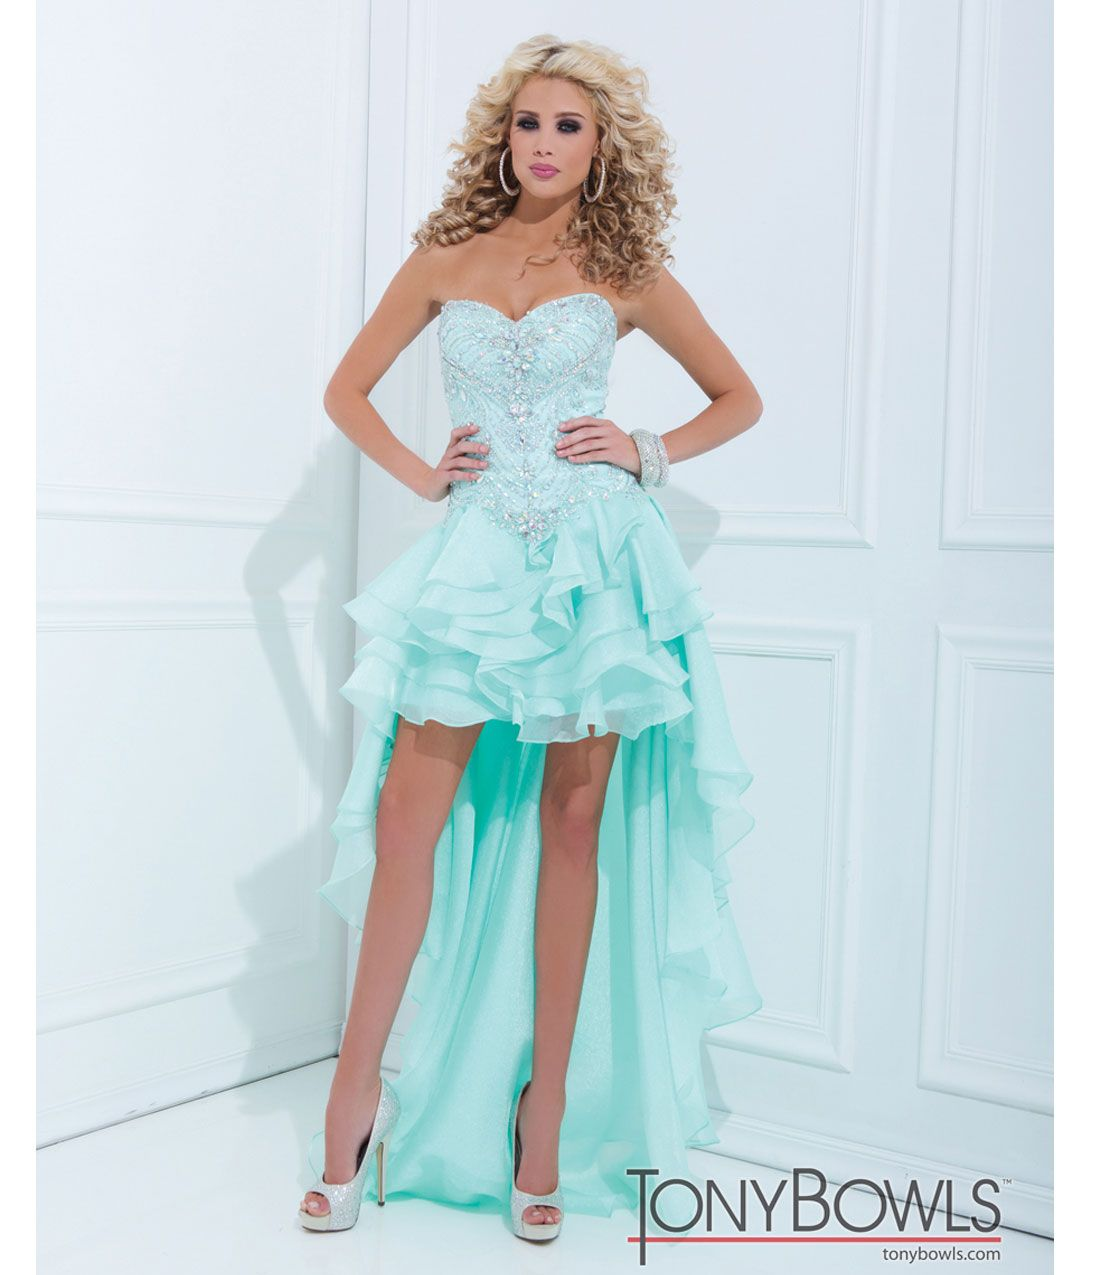 Unique Vintage | Vintage prom, Tony bowls and Retro dress